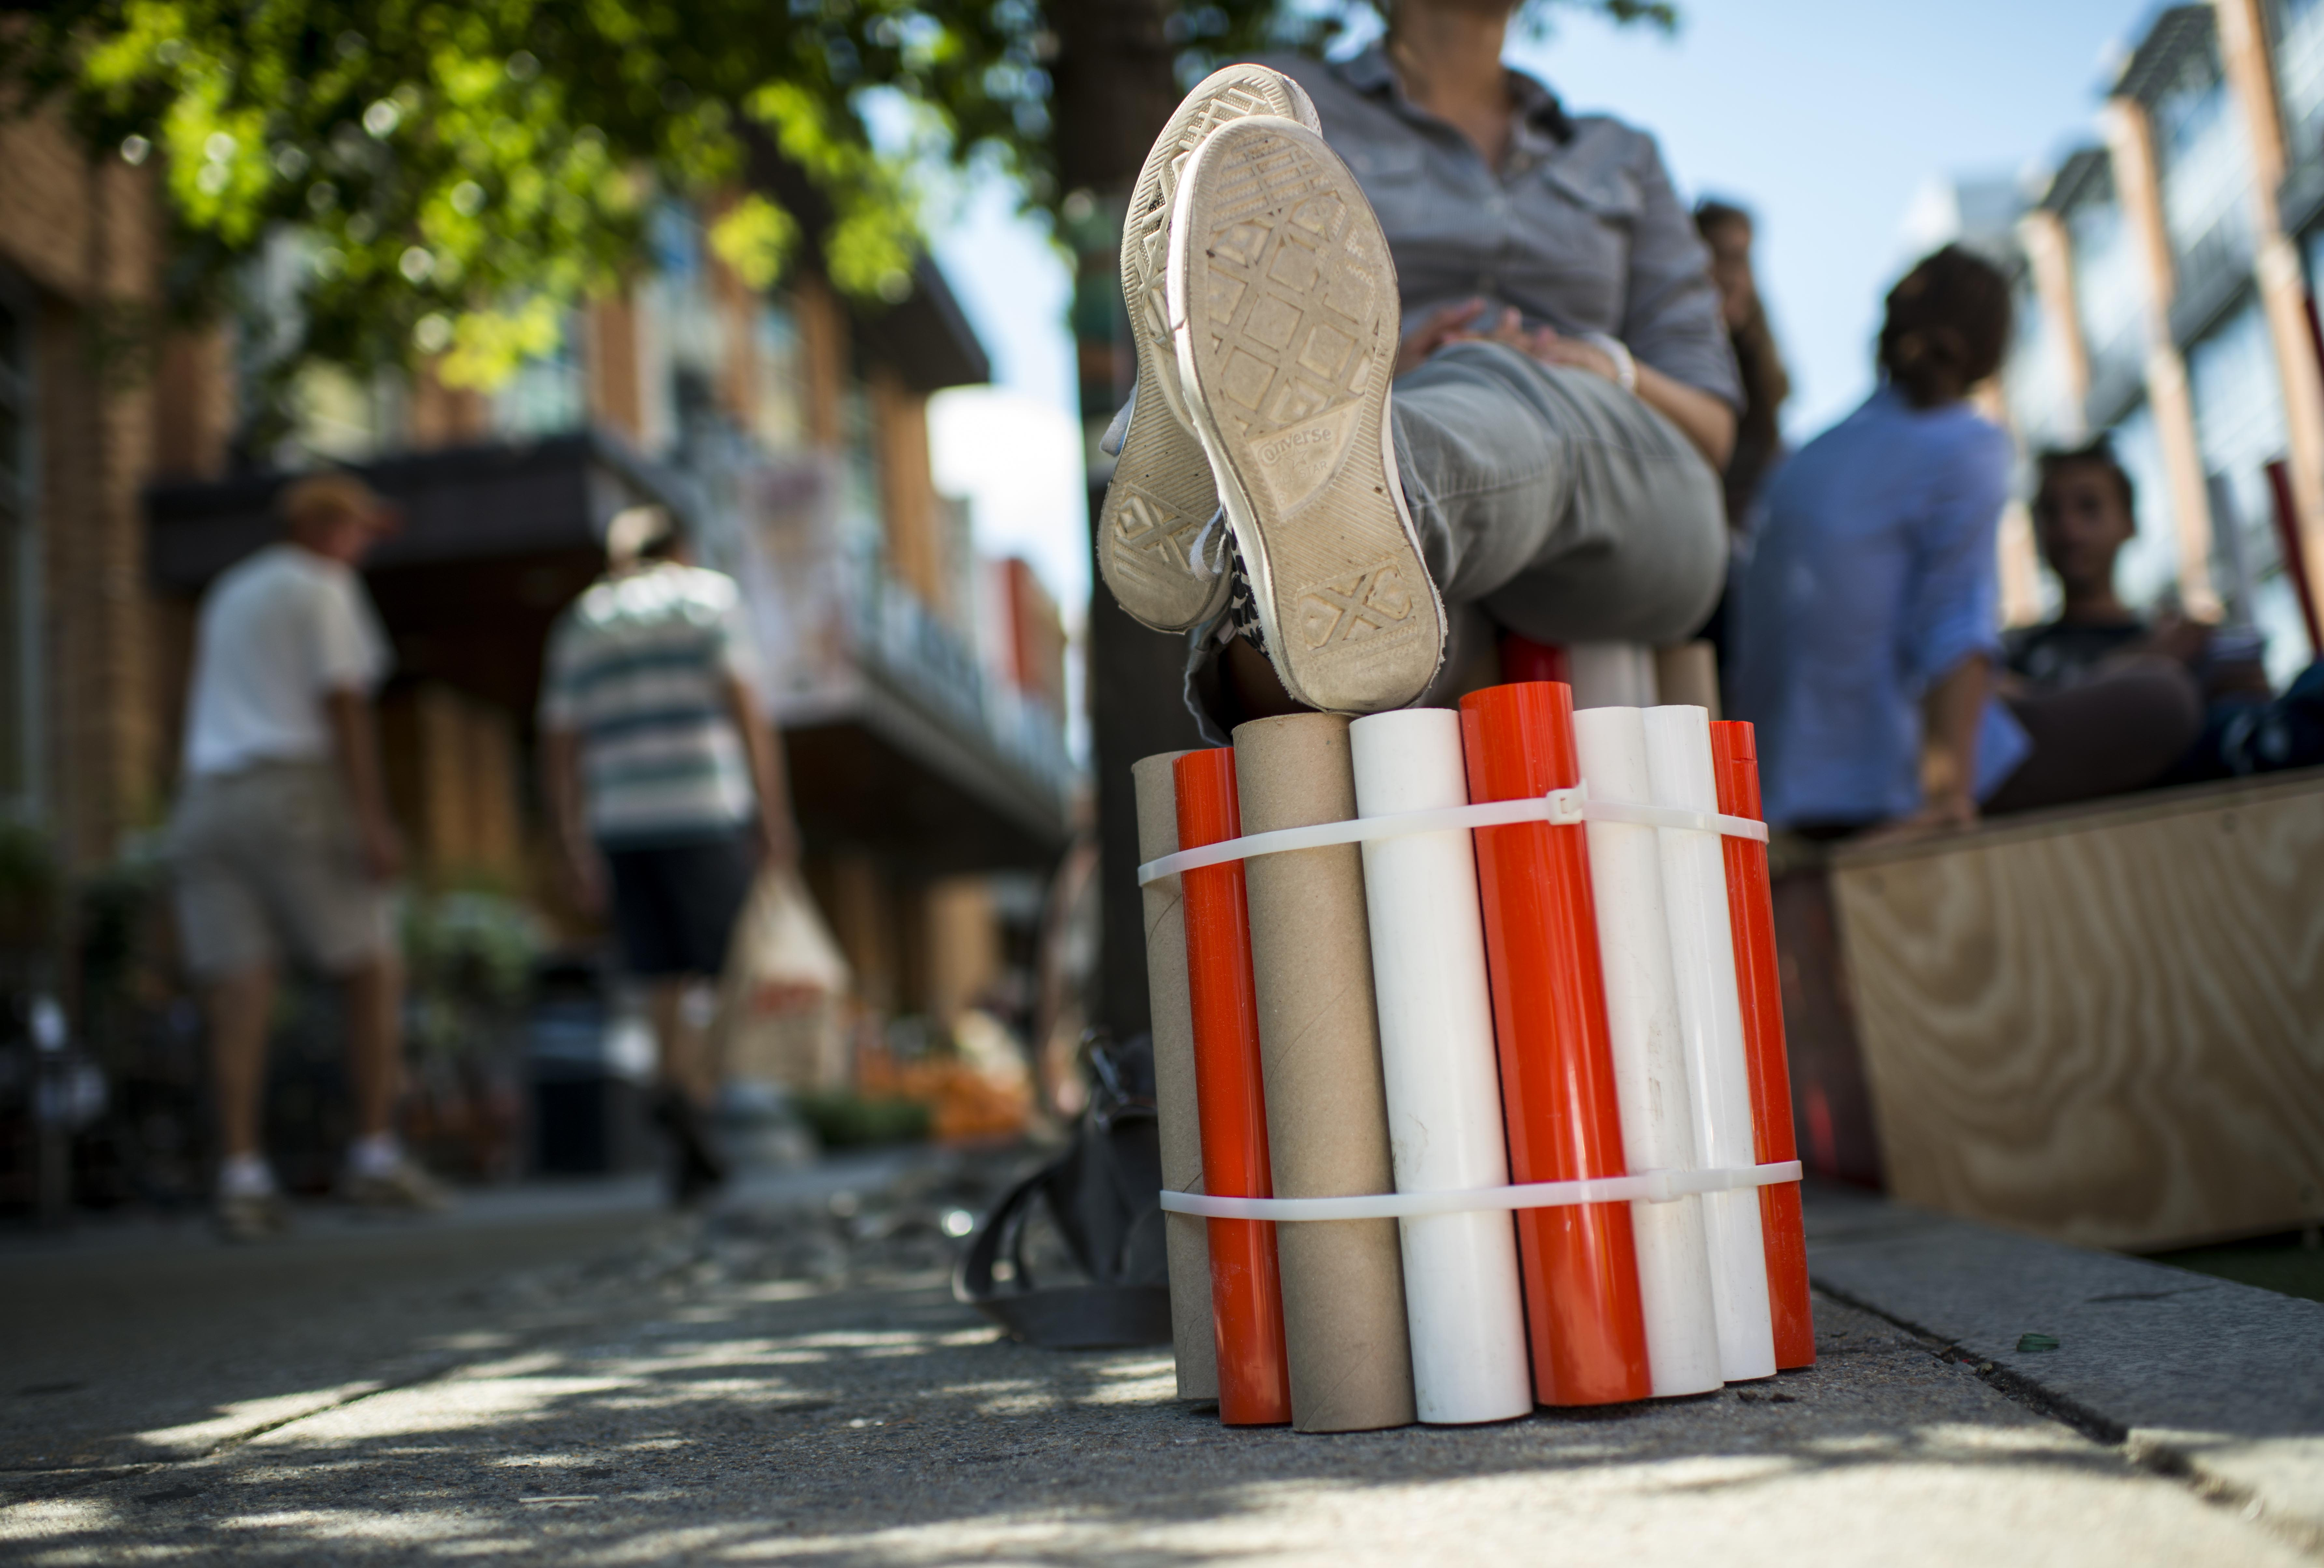 D.C. parking spots will be turned into temporary mini parks in September